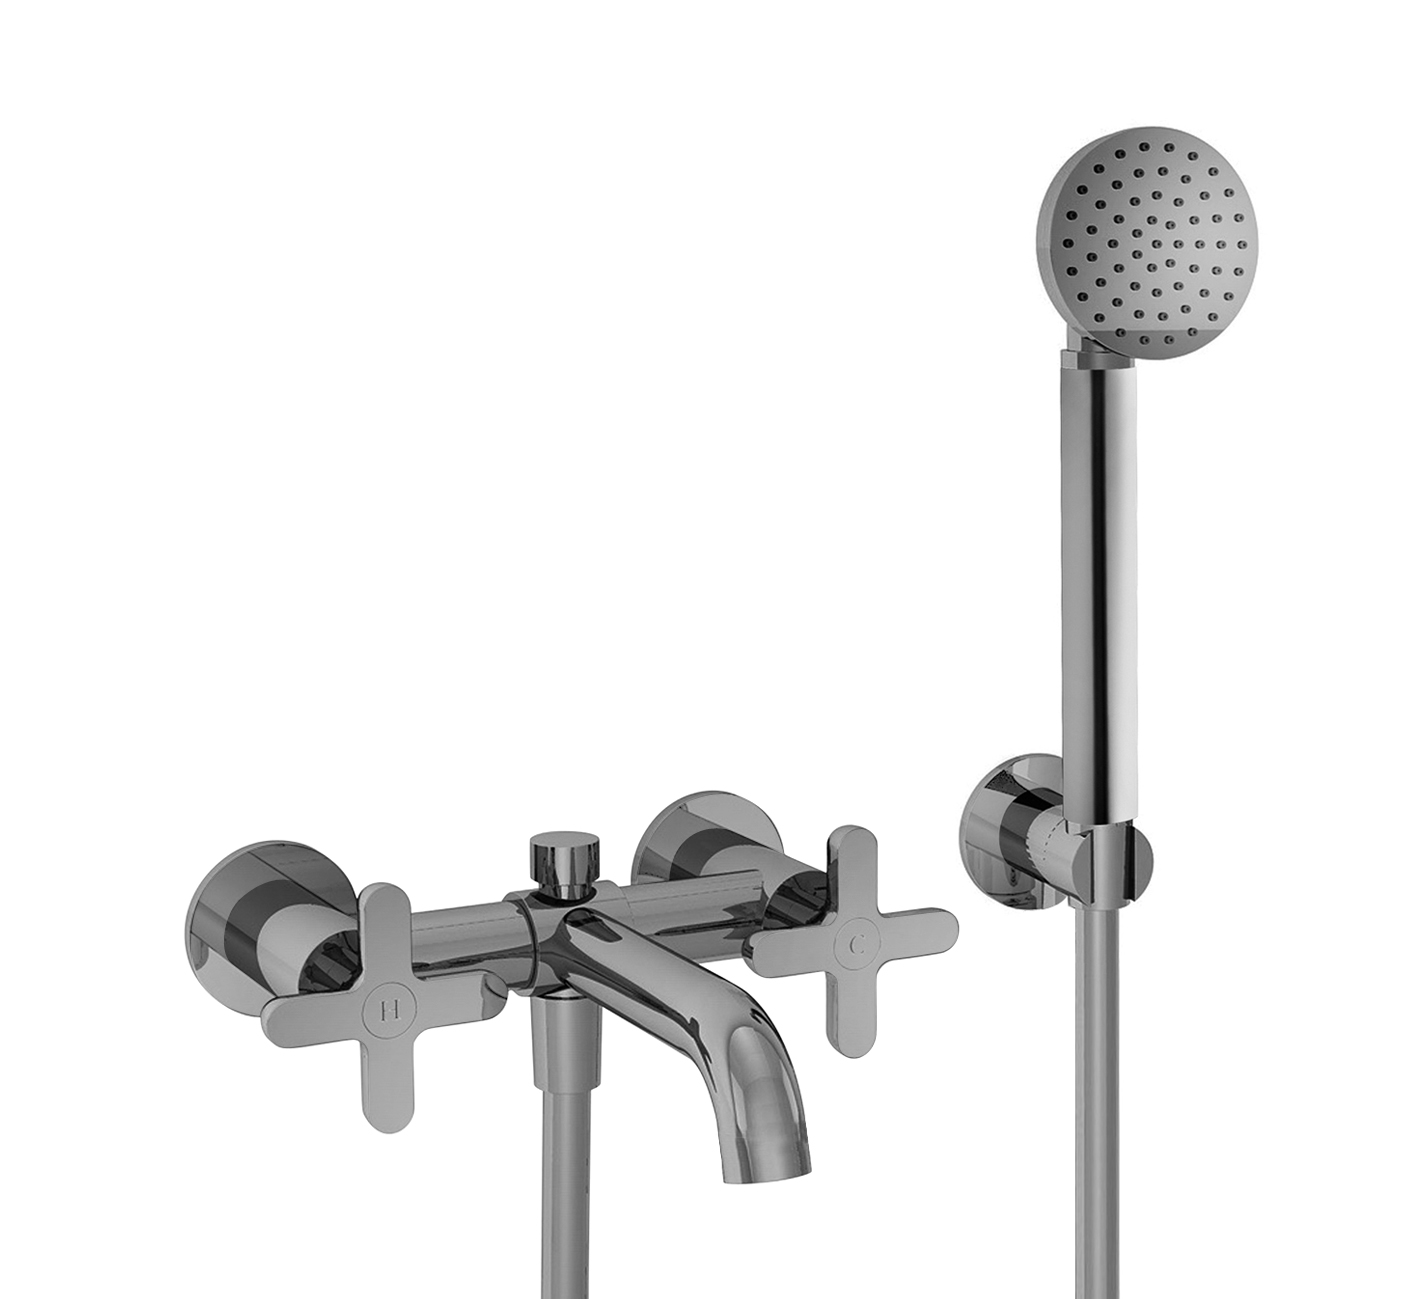 Art. R015 Icona Classic Wall Mount Bathtub Mixer